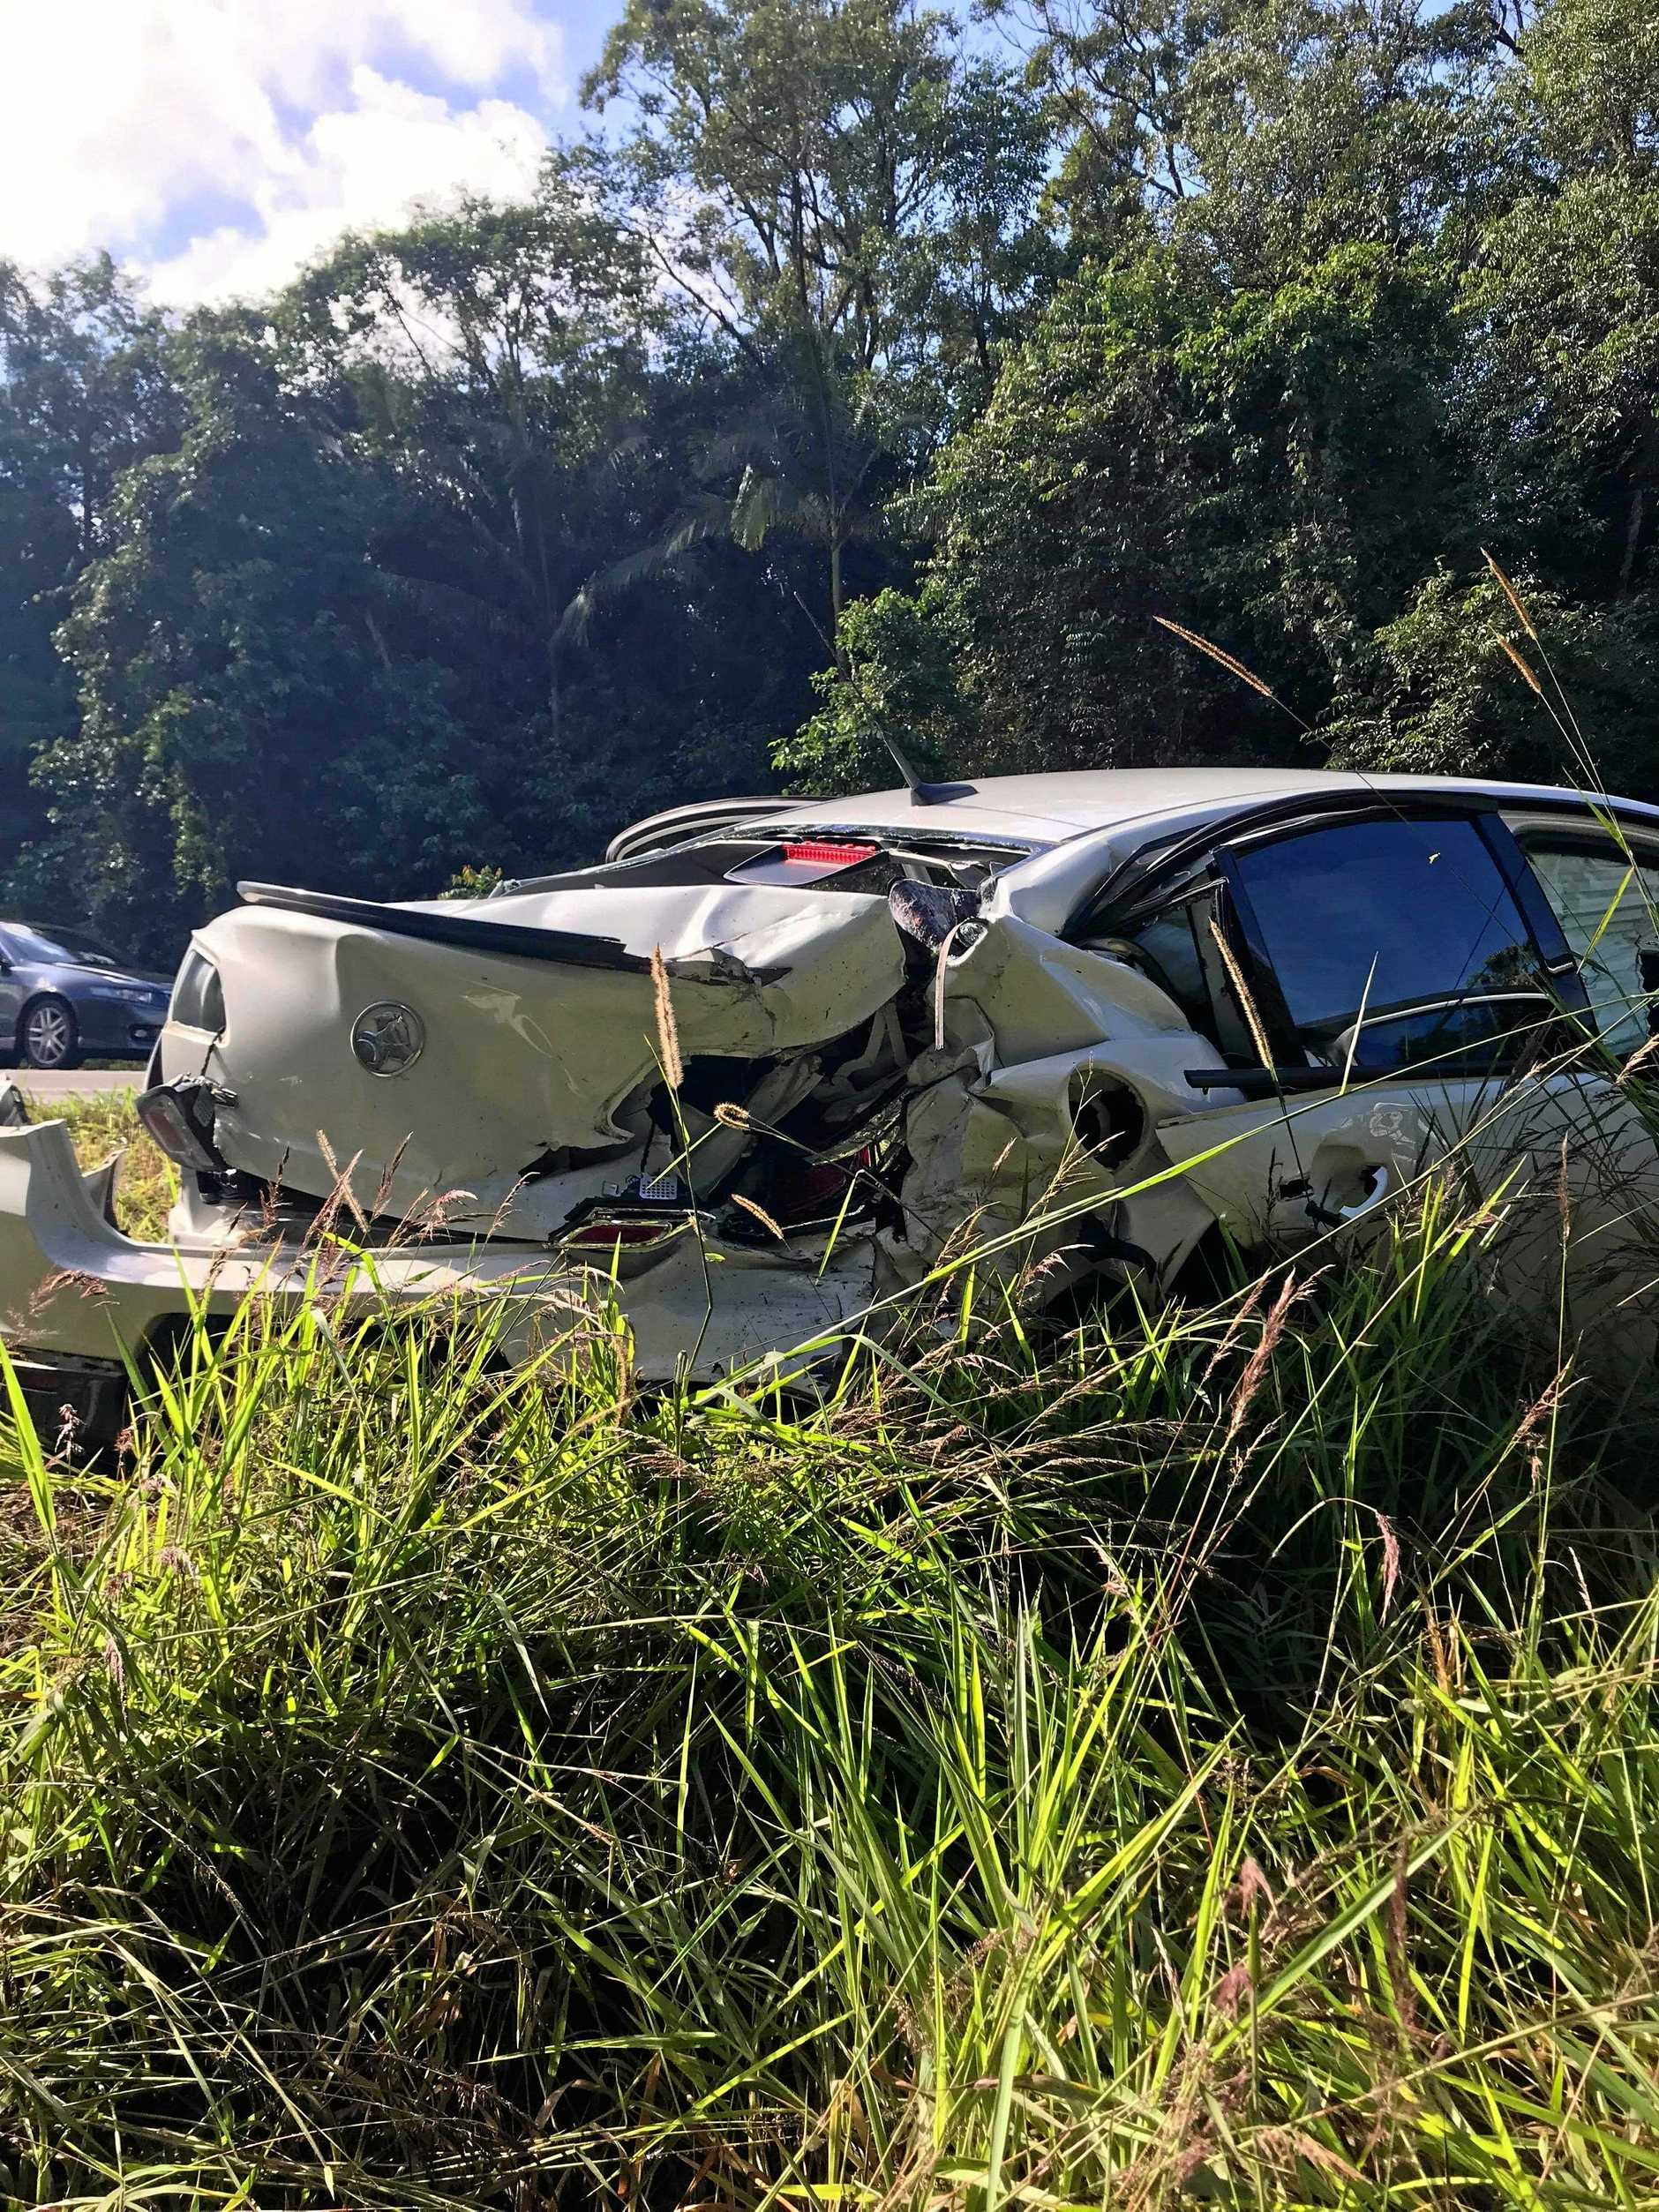 Llew O'Brien was travelling in this car when it was hit from behind on Sunshine Motorway.